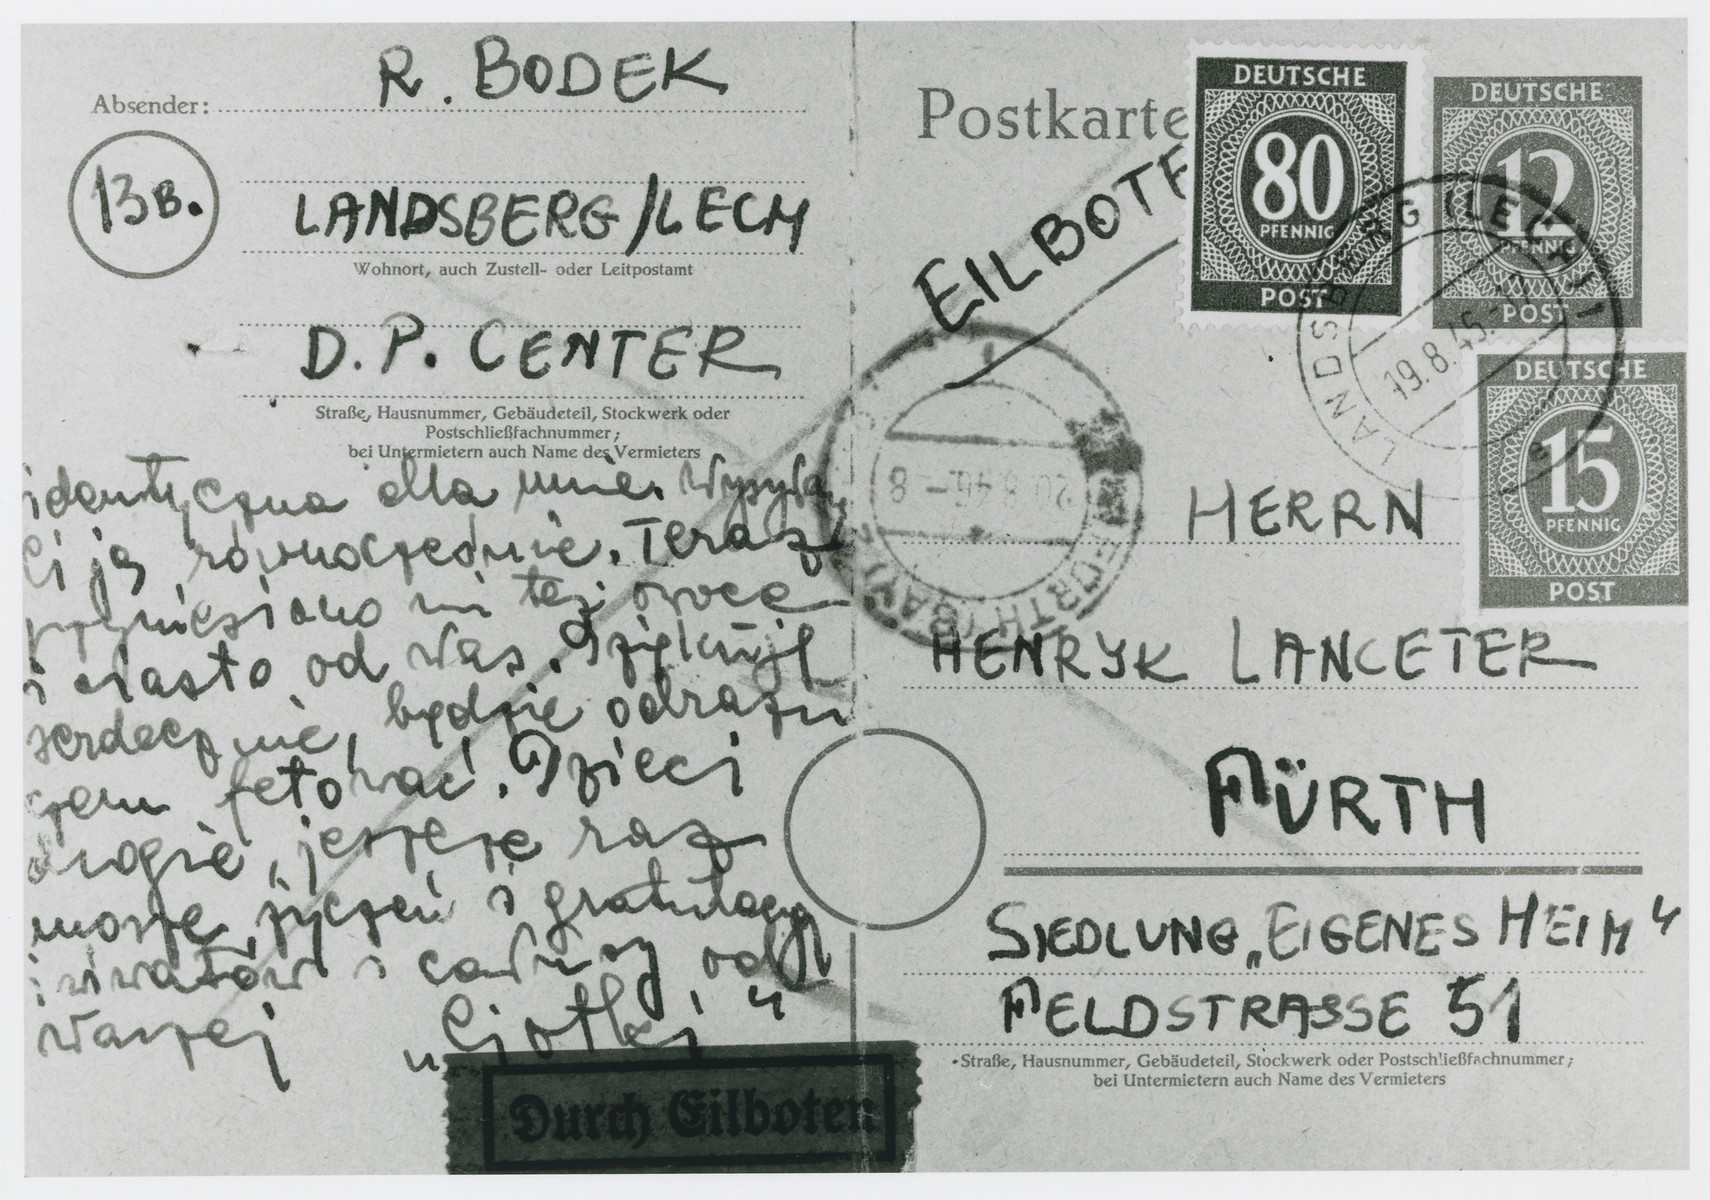 A postcard written by Gina Dustenfeld-Atsmon to her cousin, the donor, congratulating her on the birth of her daughter.